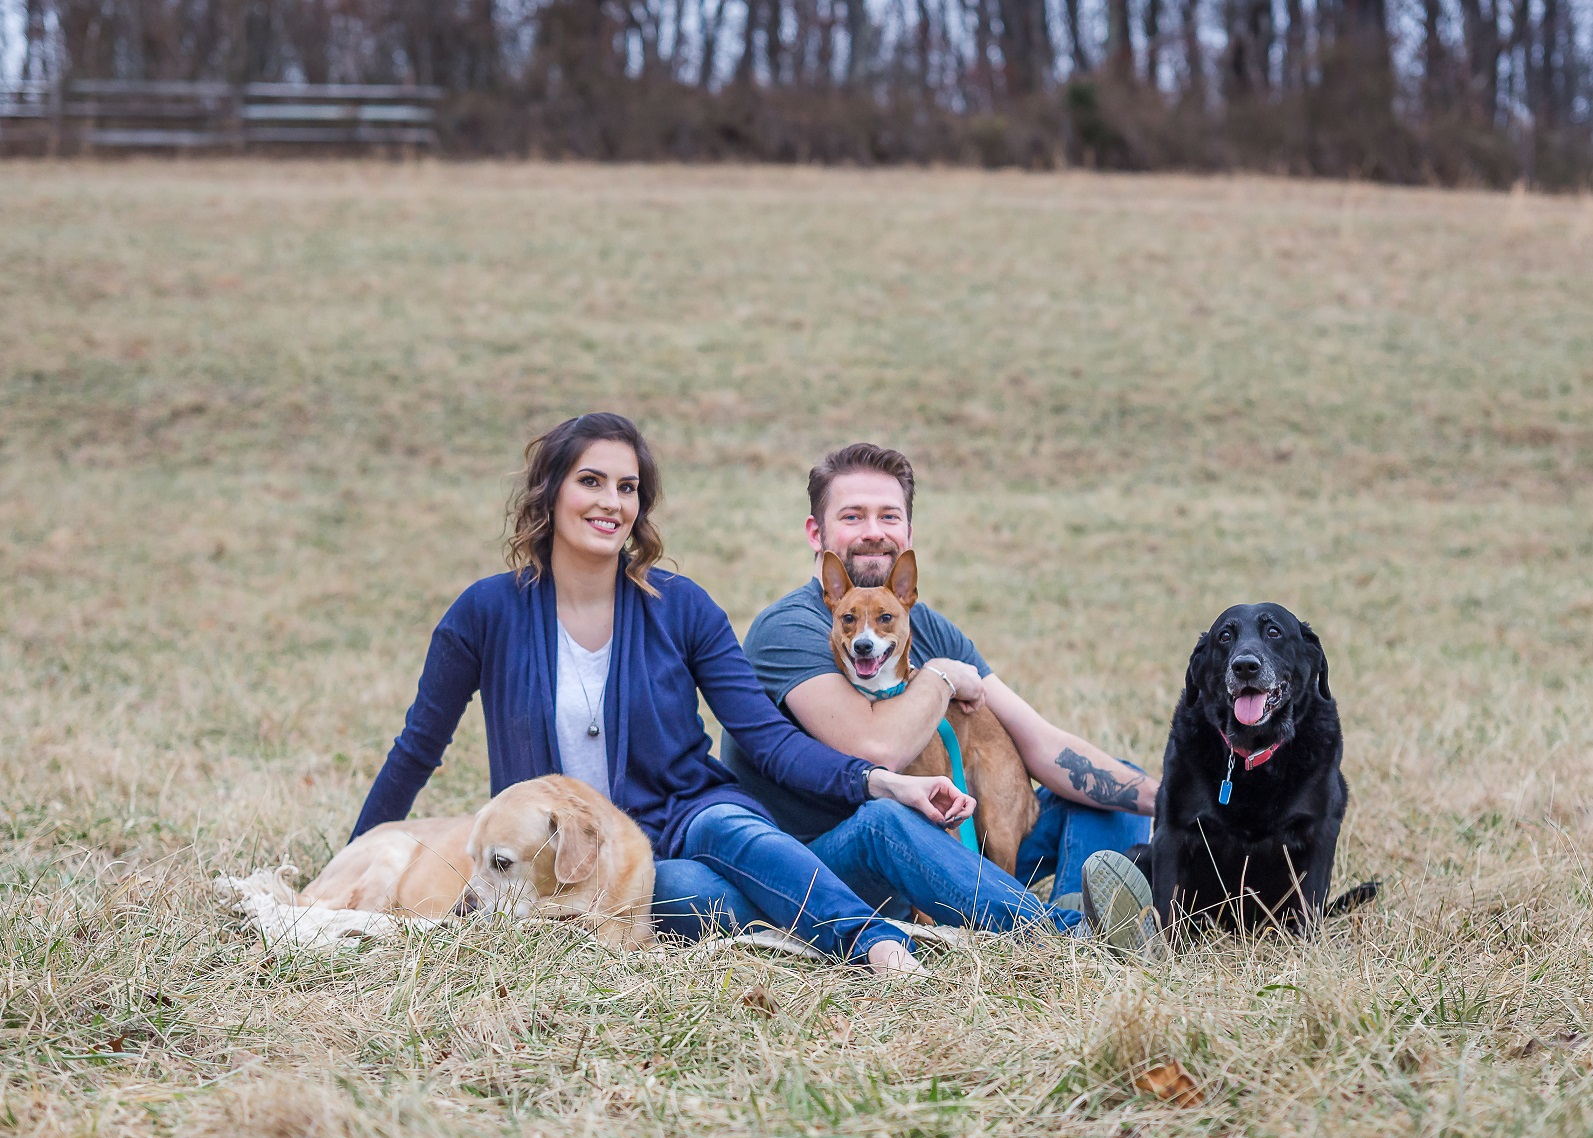 Maggie's Farm founders Tim and Layla Russell with their three rescue dogs, Crosby, Lumi, and Blake.